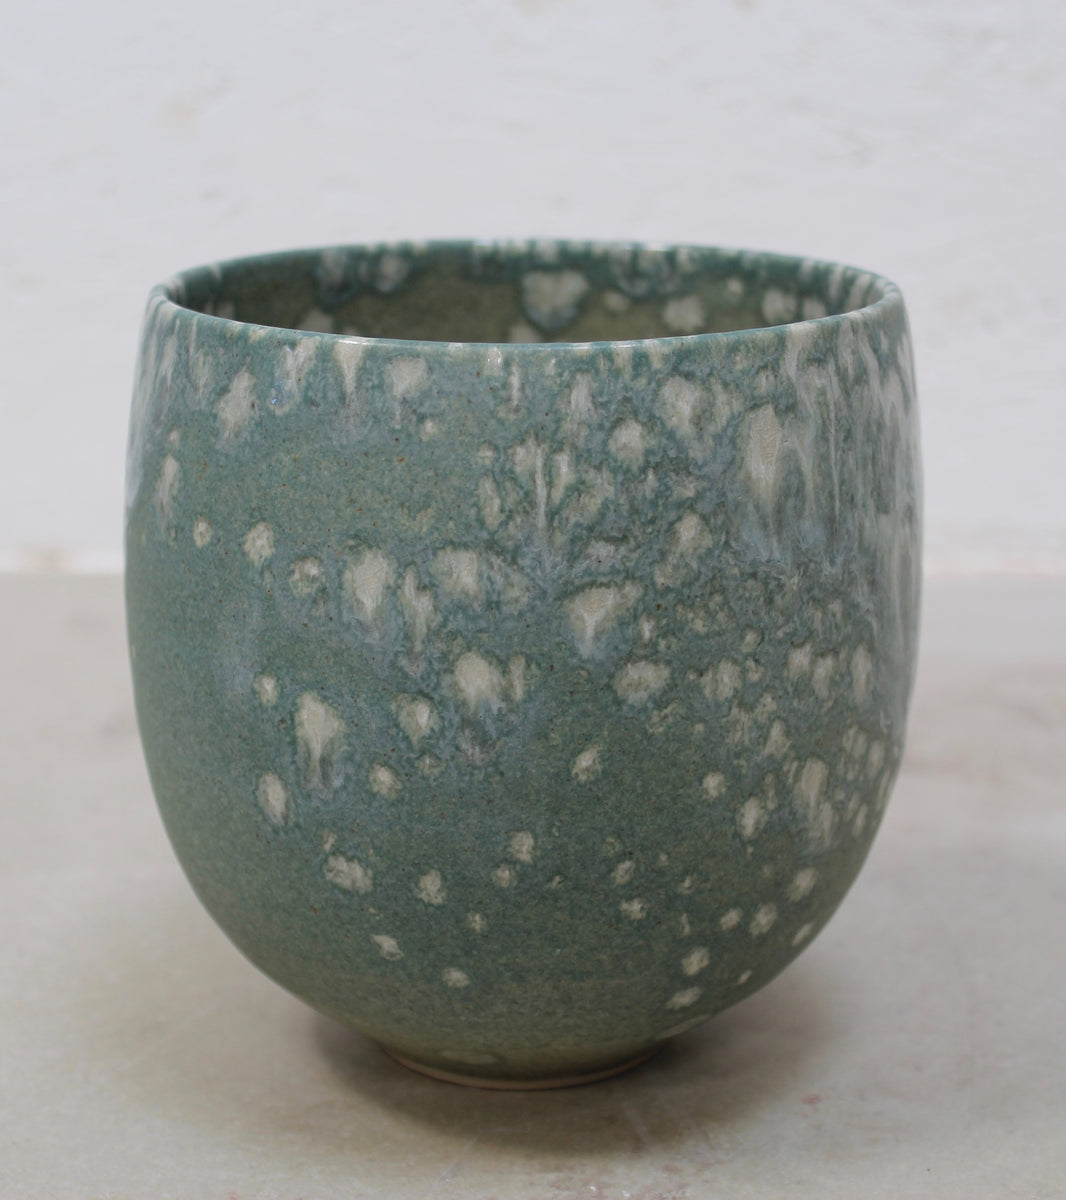 '#31' Small Eastern Bell Shaped Pot <br> White & Teal Glaze